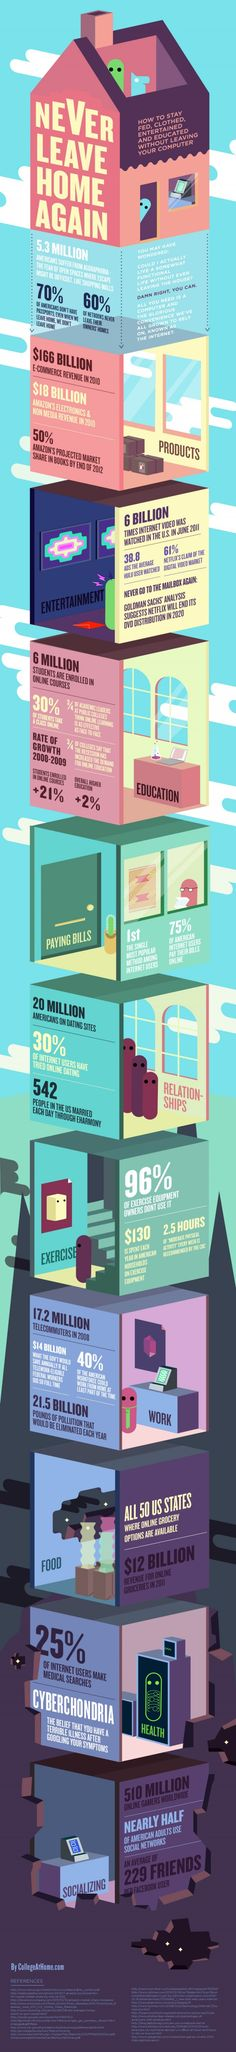 Unique Infographic Design, Never Leave Home Again #Infographic #Design